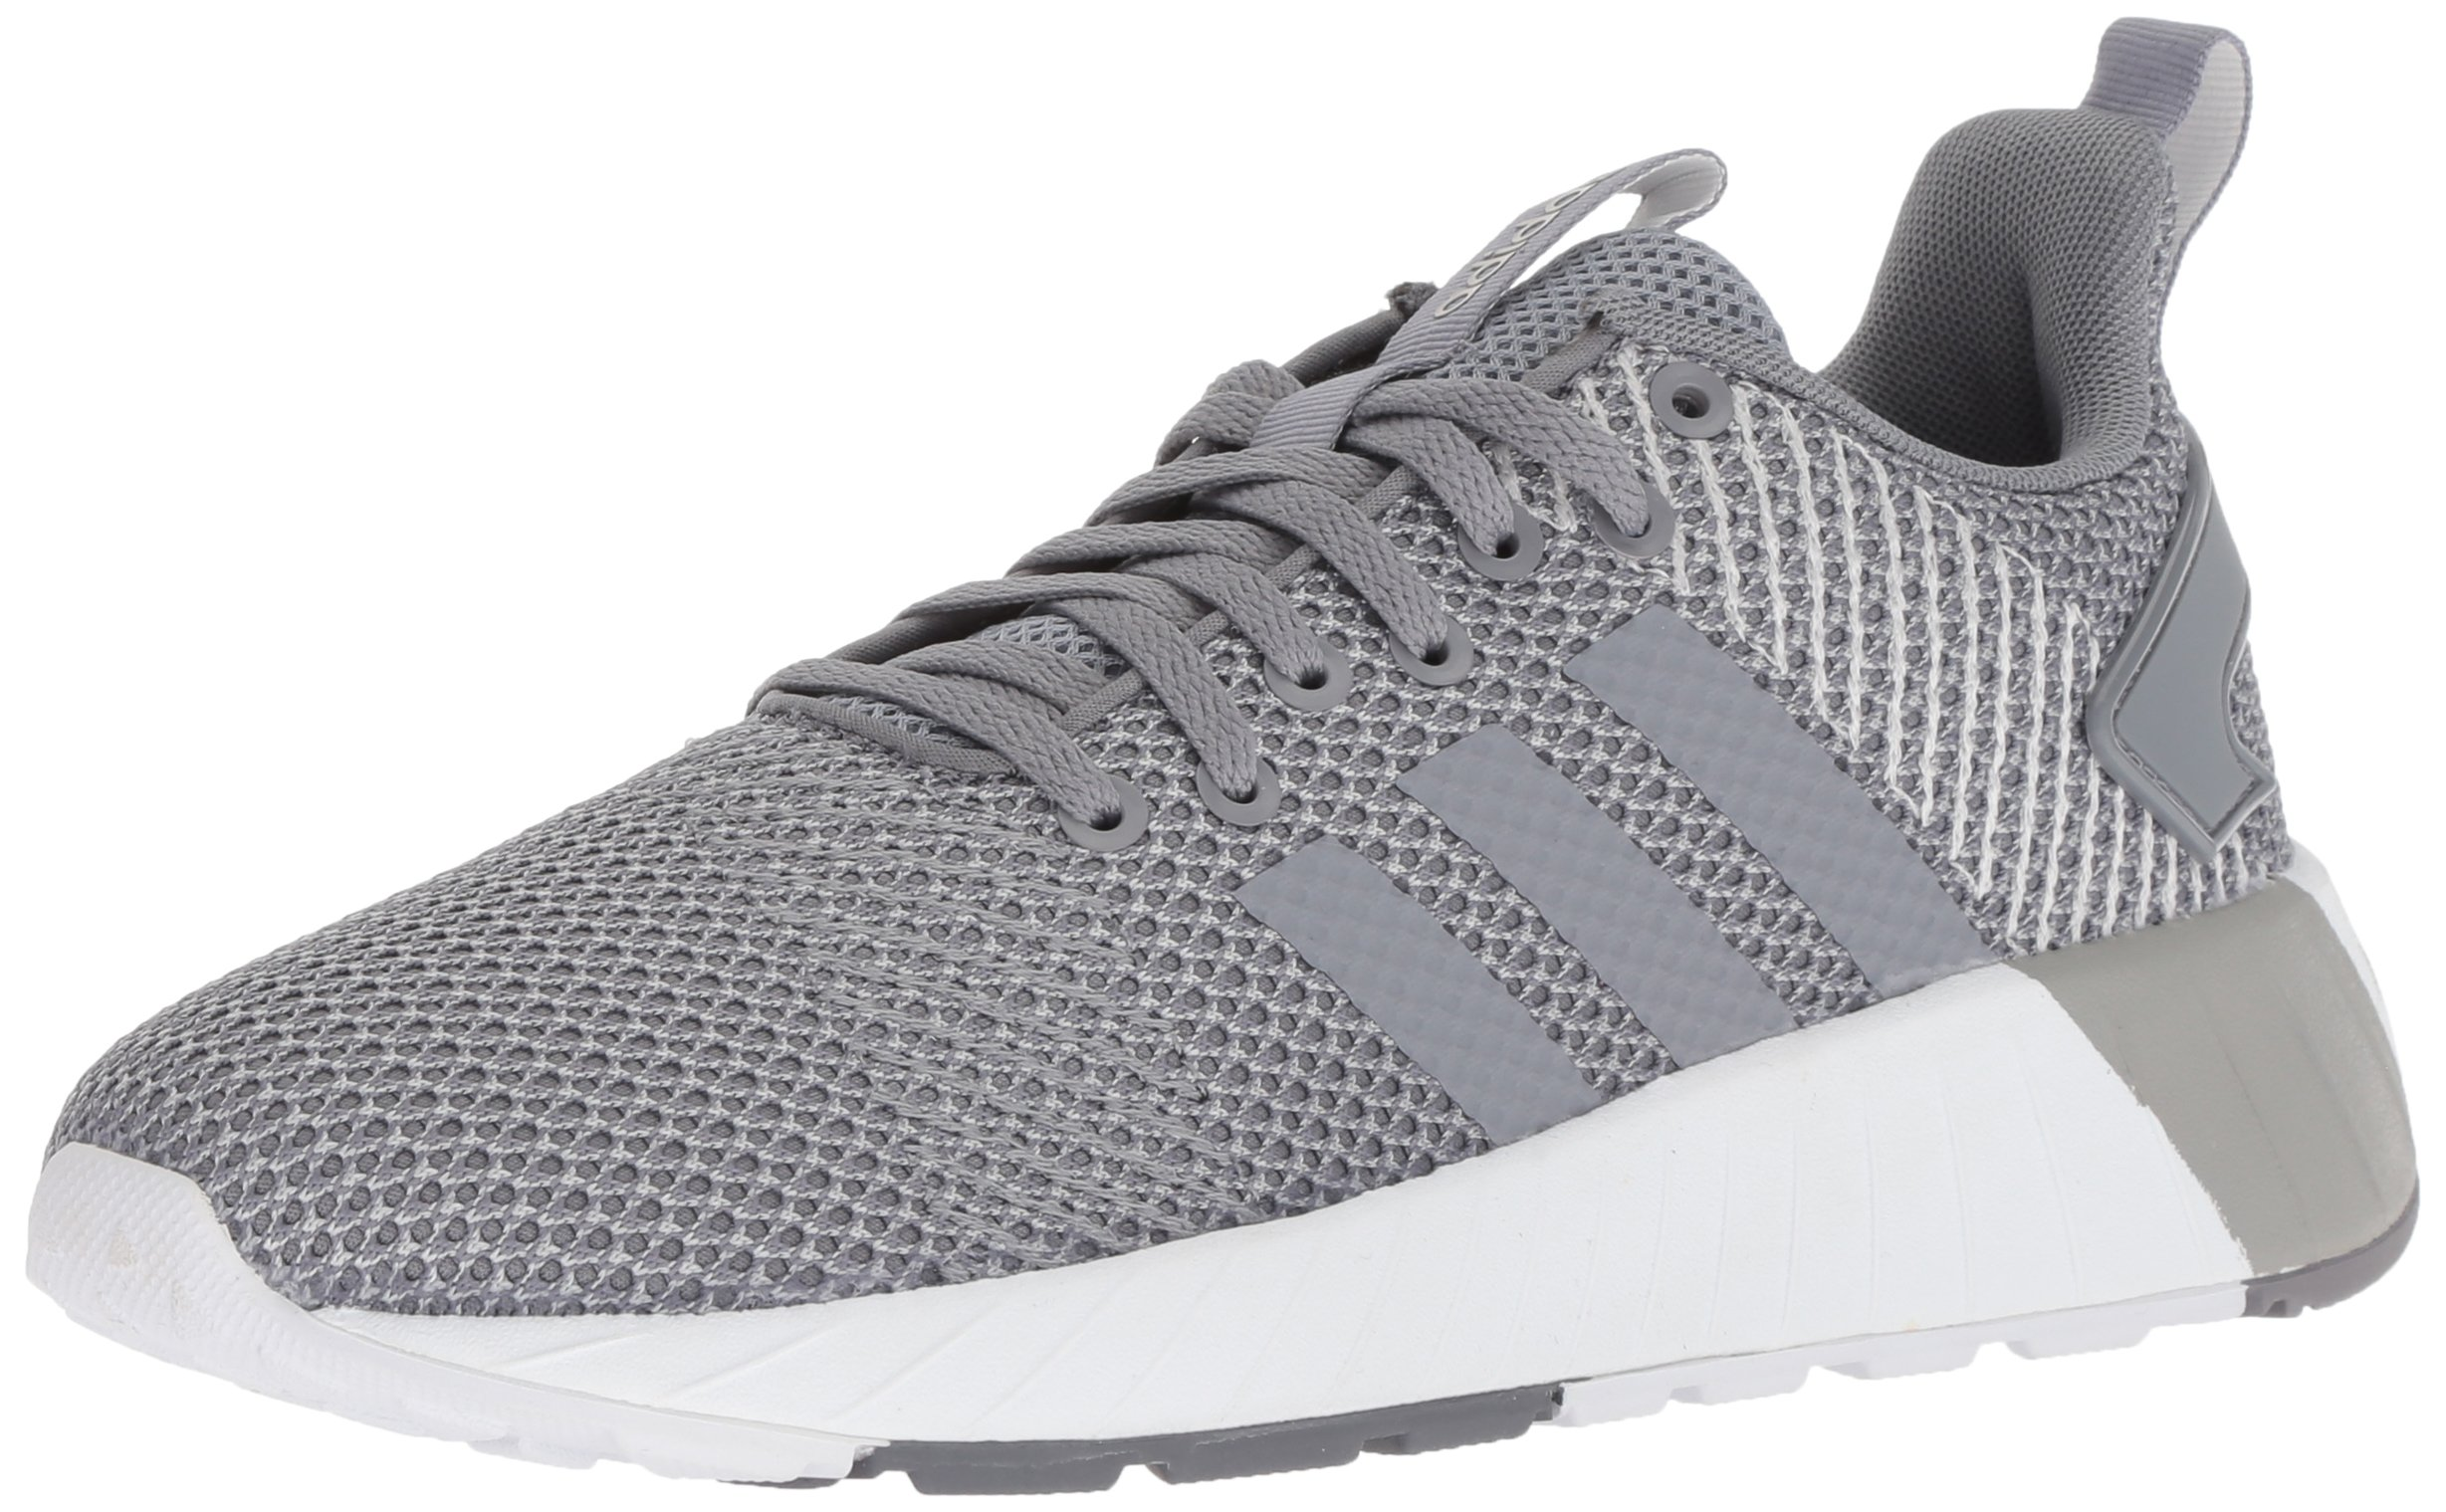 adidas Men's Questar BYD Running Shoe, Grey/Cloud White, 6.5 M US by adidas (Image #1)